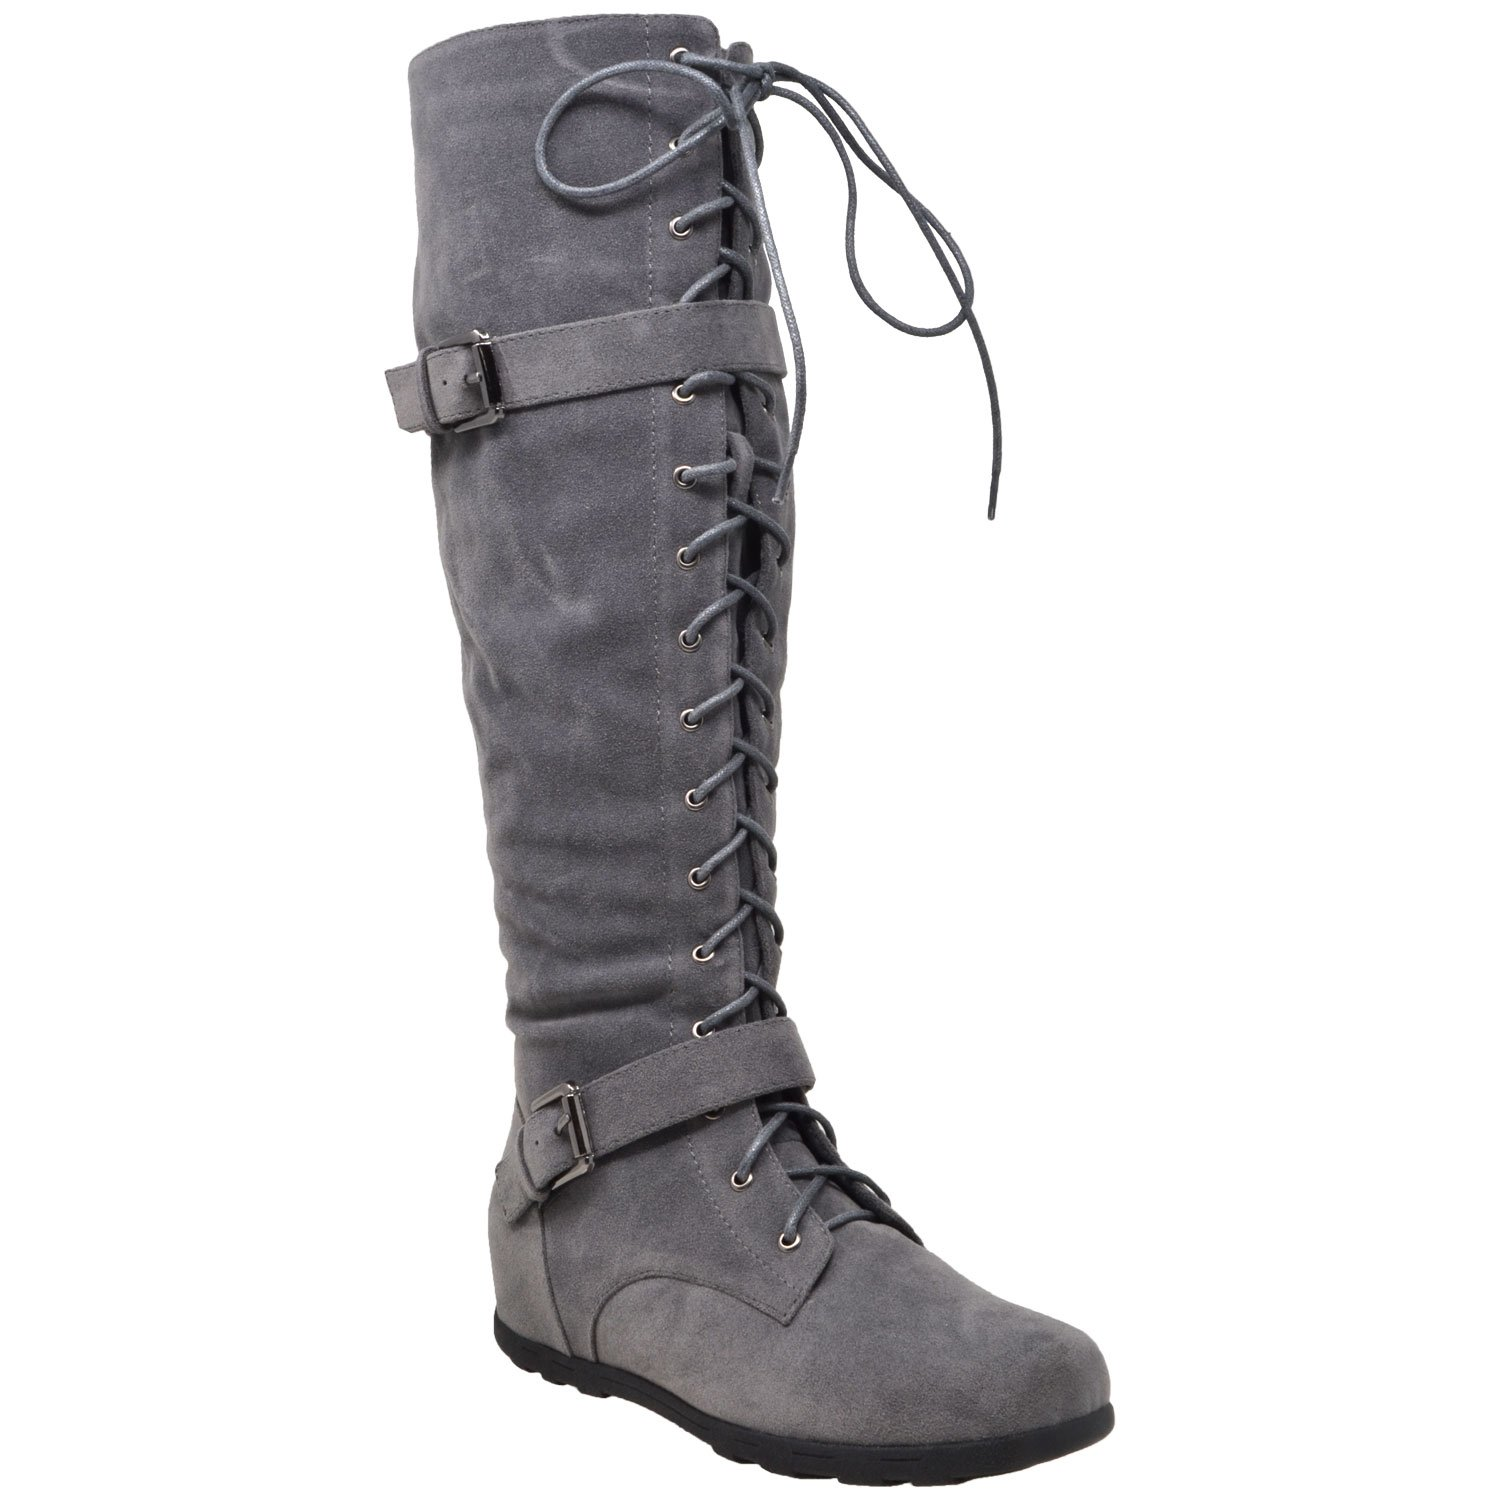 Generation Y Womens Boots Knee High Block Heels Lace Up Combat Buckle Strap Zipper Closure Shoes Gray